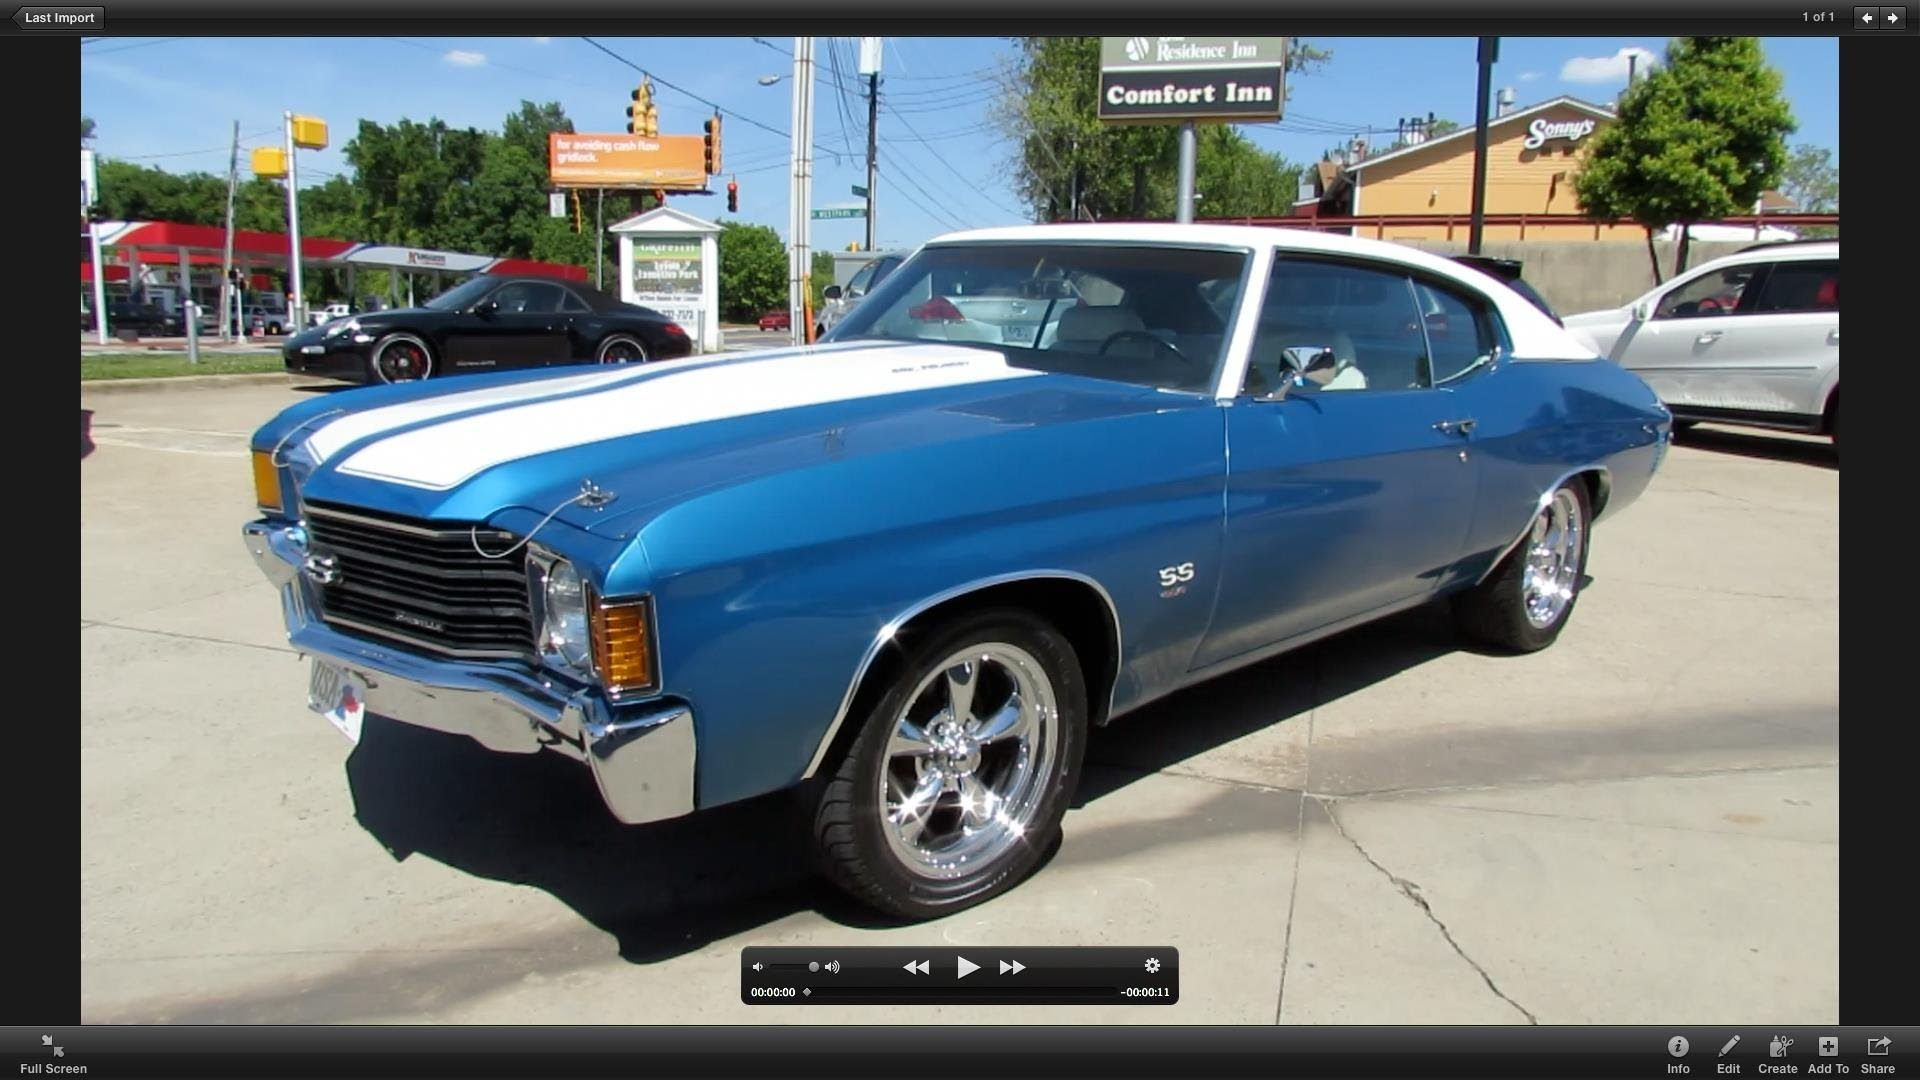 67 chevelle ss lowered 67 chevelle convertible ground pounders pinterest chevelle ss and convertible